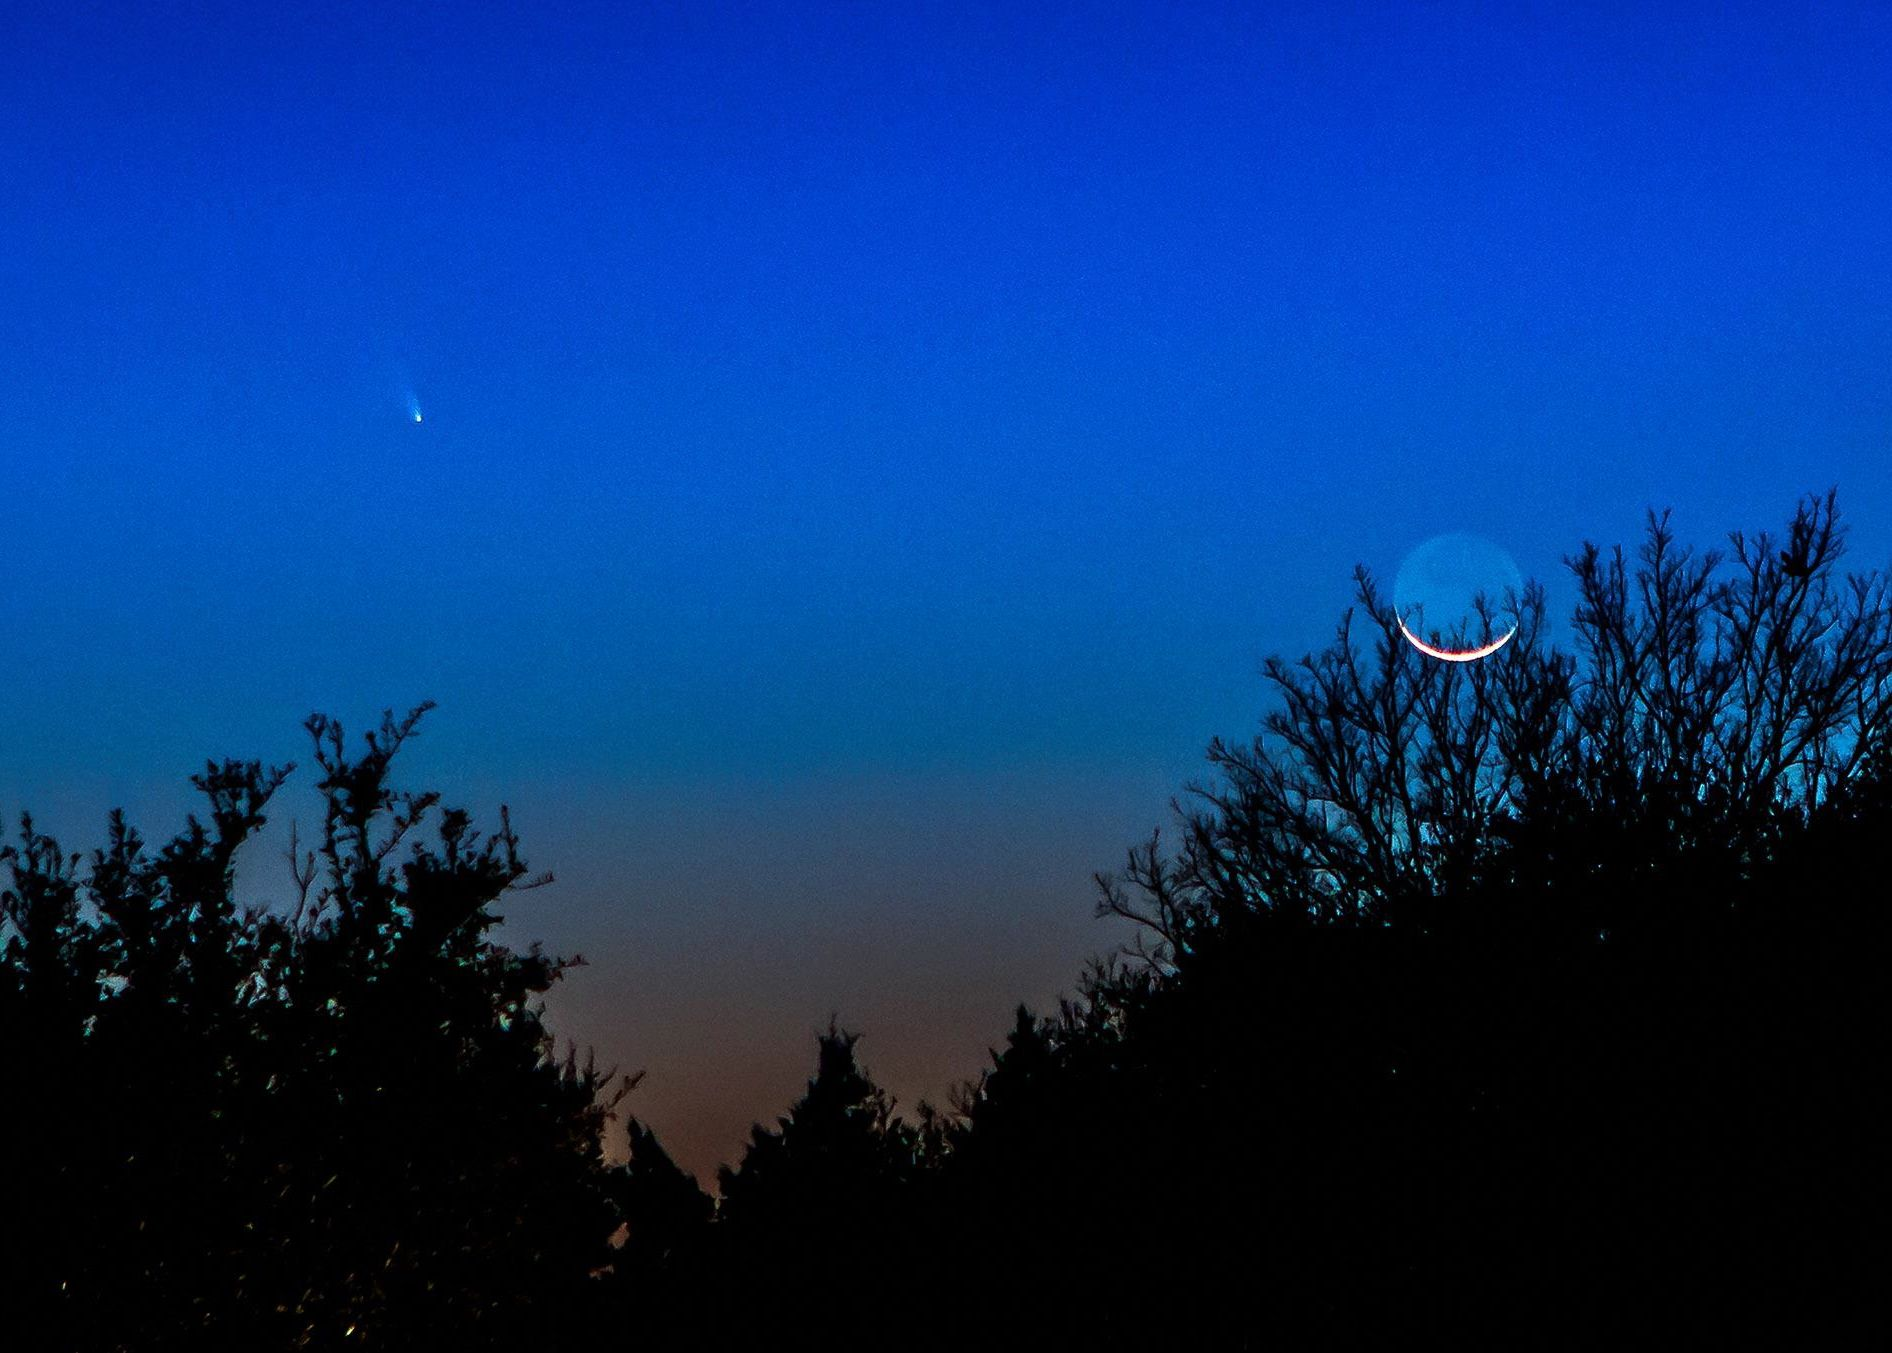 EarthSky Facebook friend Milton Otto of Austin, Texas captured this image of Comet PANSTARRS near the young  moon on March 12, 2013.  Awesome shot, Milton!  Thank you.  View larger.